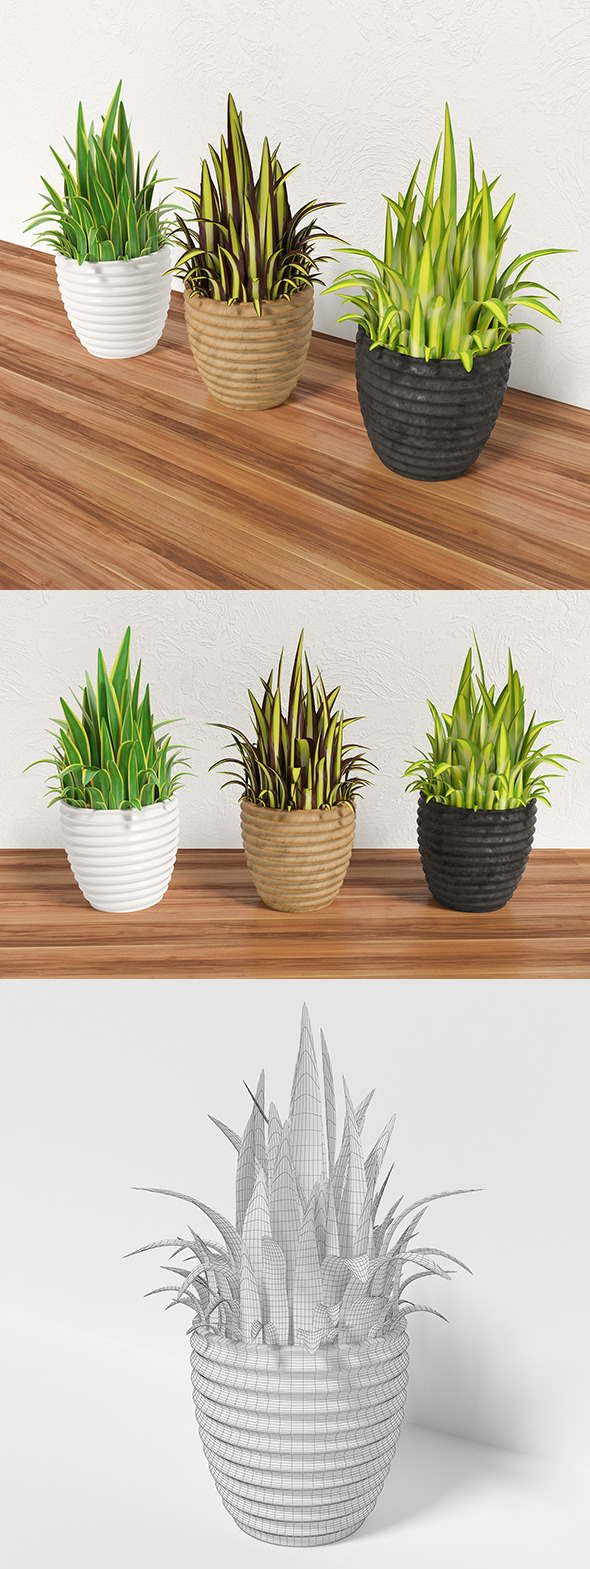 Decorative grass in a pot - 3DOcean Item for Sale